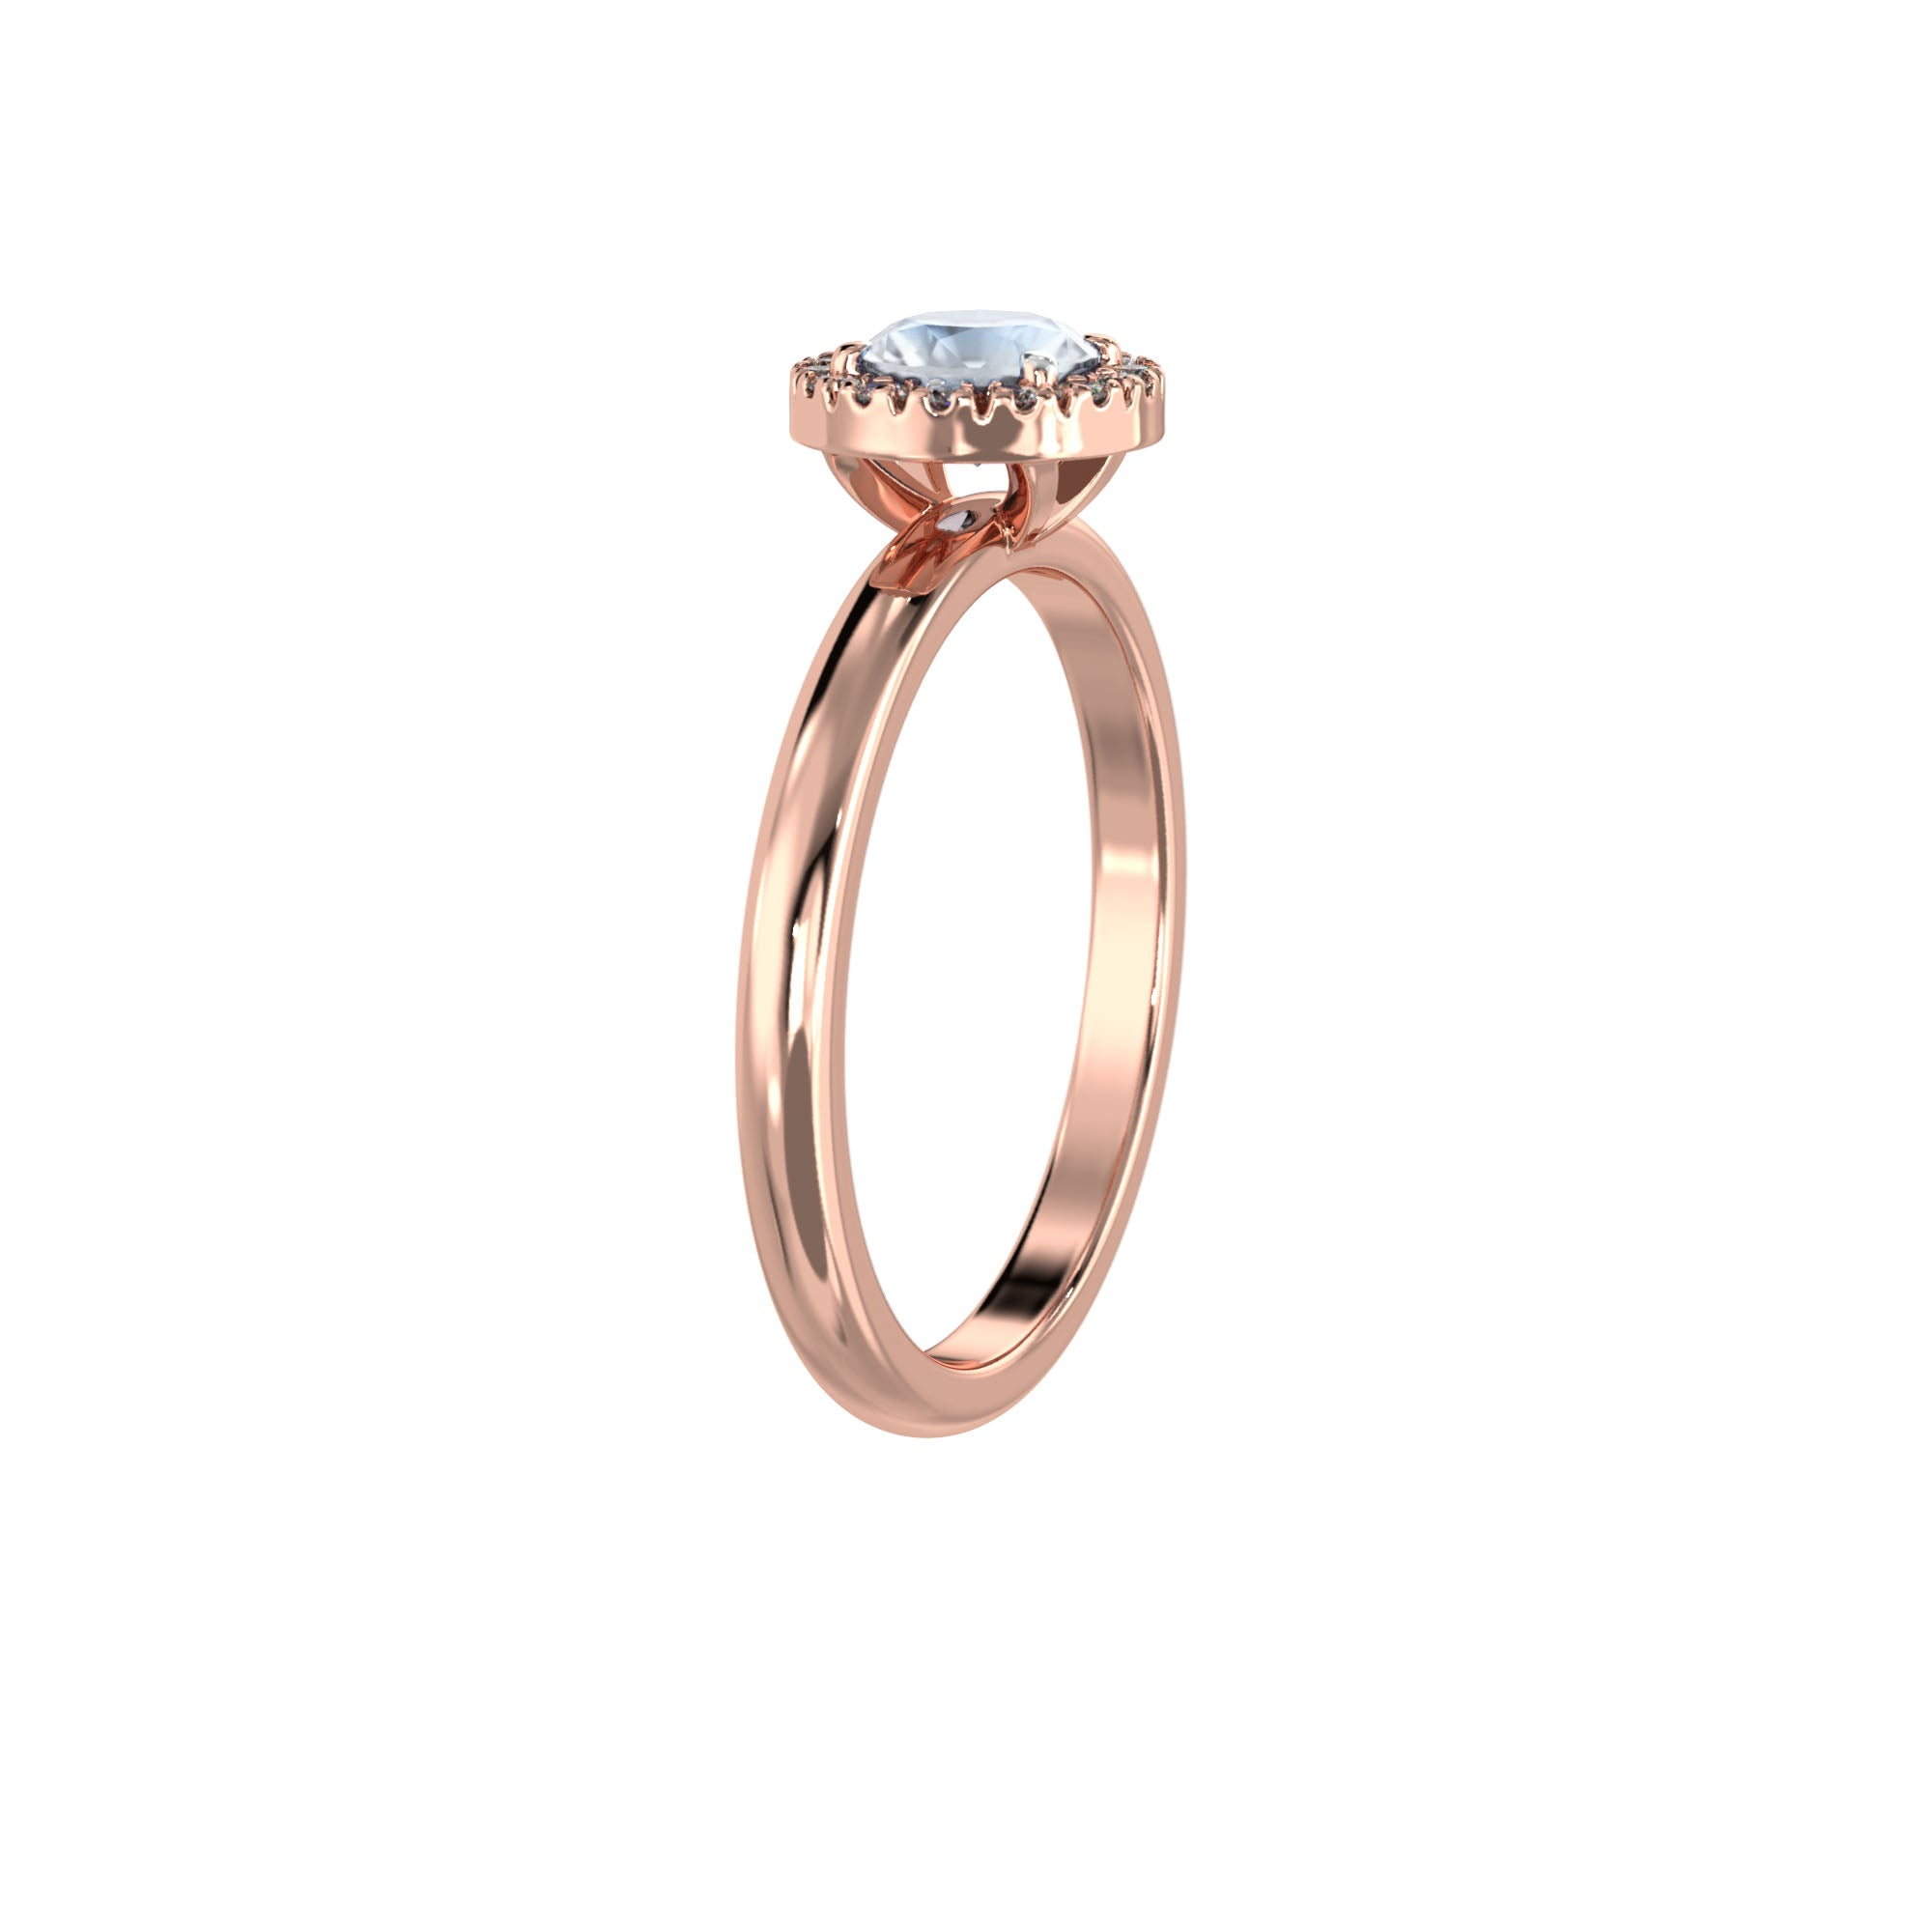 925 Silver Luxe Series Ring - Lydia (Moonstone) - Rose Gold Plated